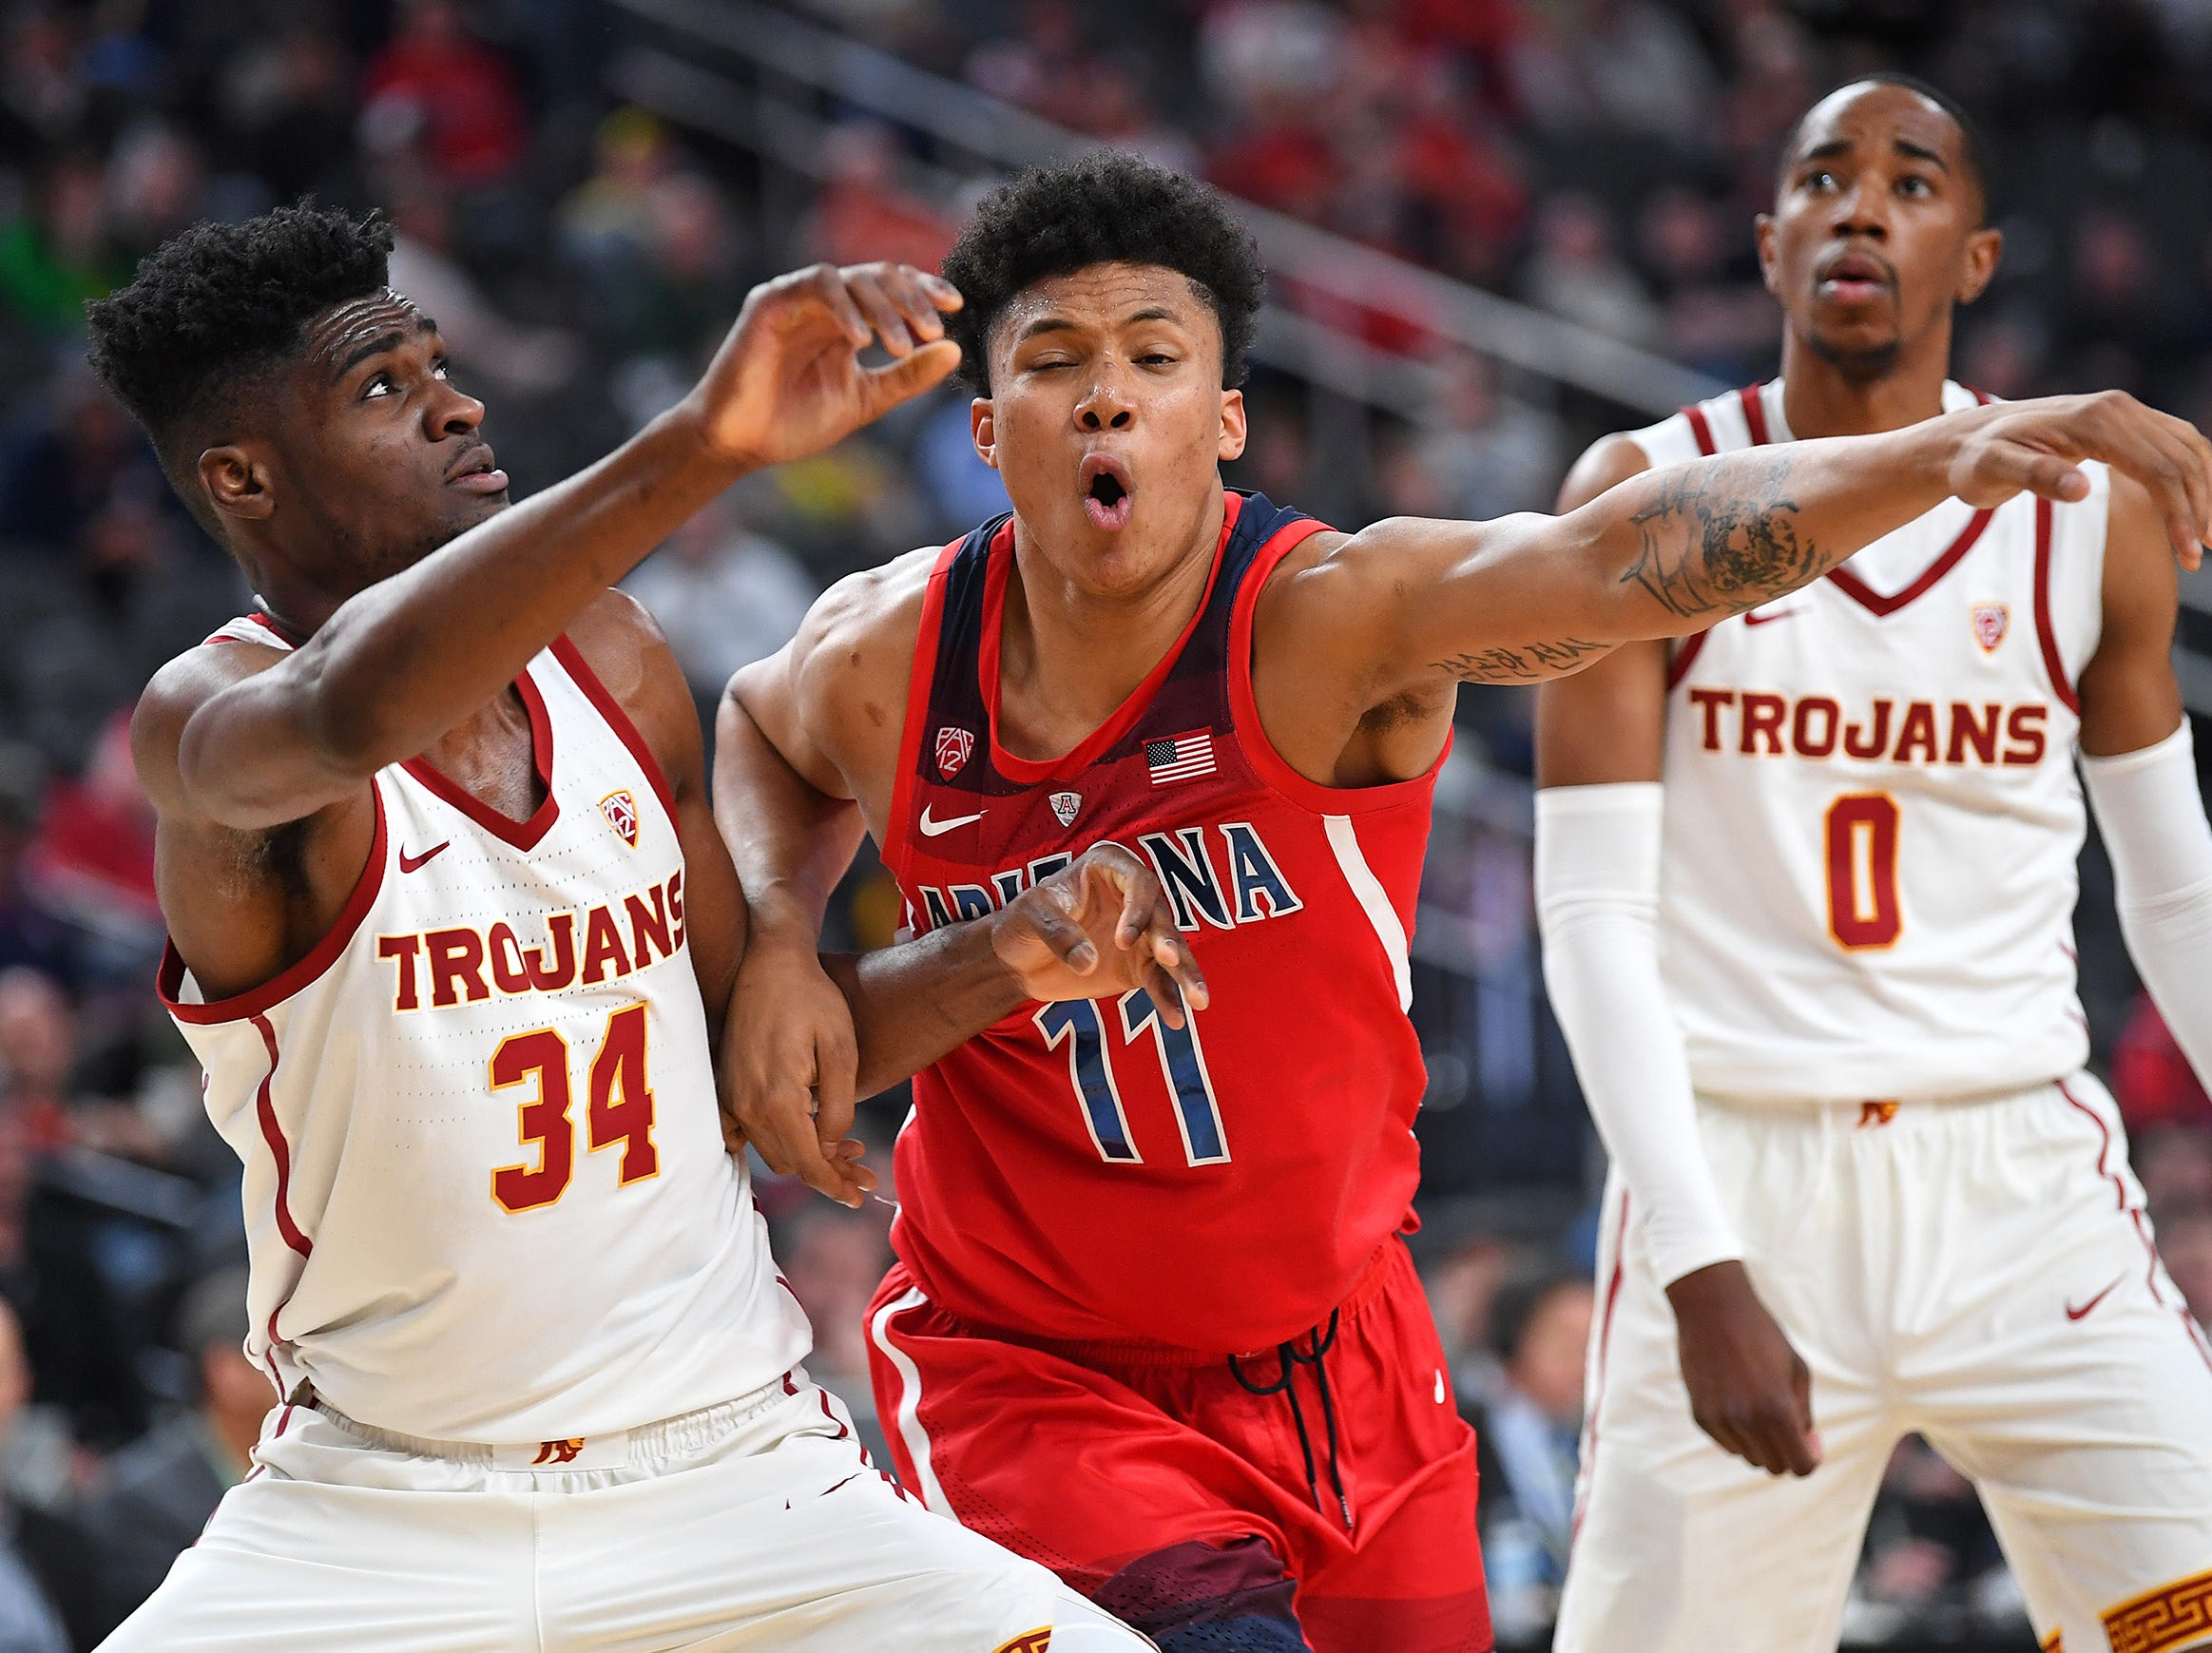 Mar 13, 2019; Las Vegas, NV, United States; USC Trojans forward Victor Uyaelunmo (34) boxes out Arizona Wildcats forward Ira Lee (11) during a first half free throw attempt in a Pac-12 conference tournament game at T-Mobile Arena. Mandatory Credit: Stephen R. Sylvanie-USA TODAY Sports